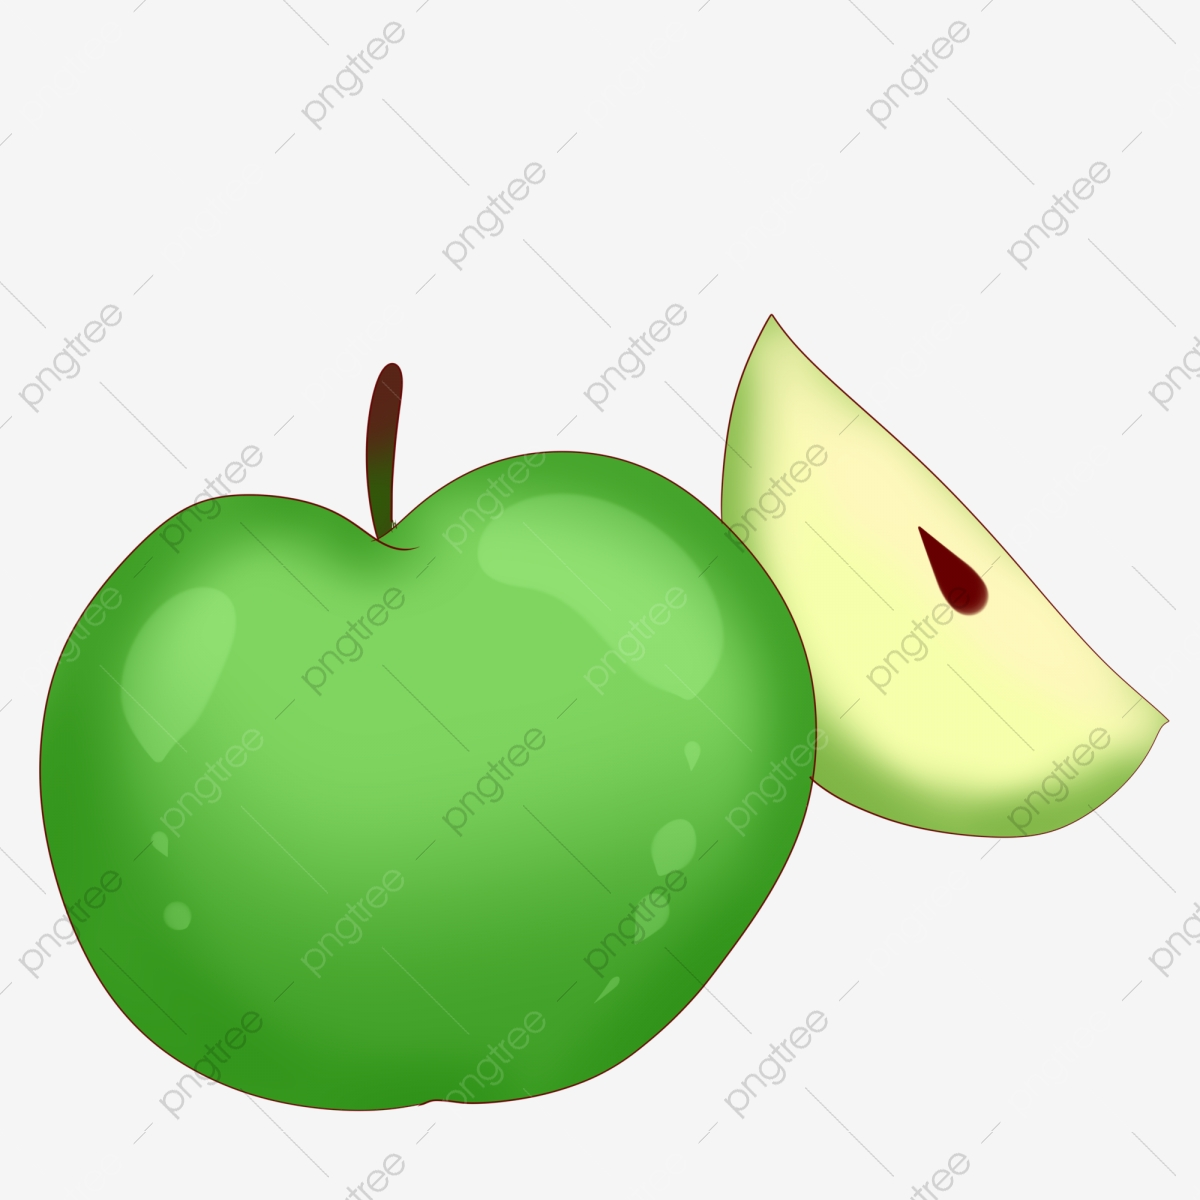 https fr pngtree com freepng green one and a half green apple 4537767 html